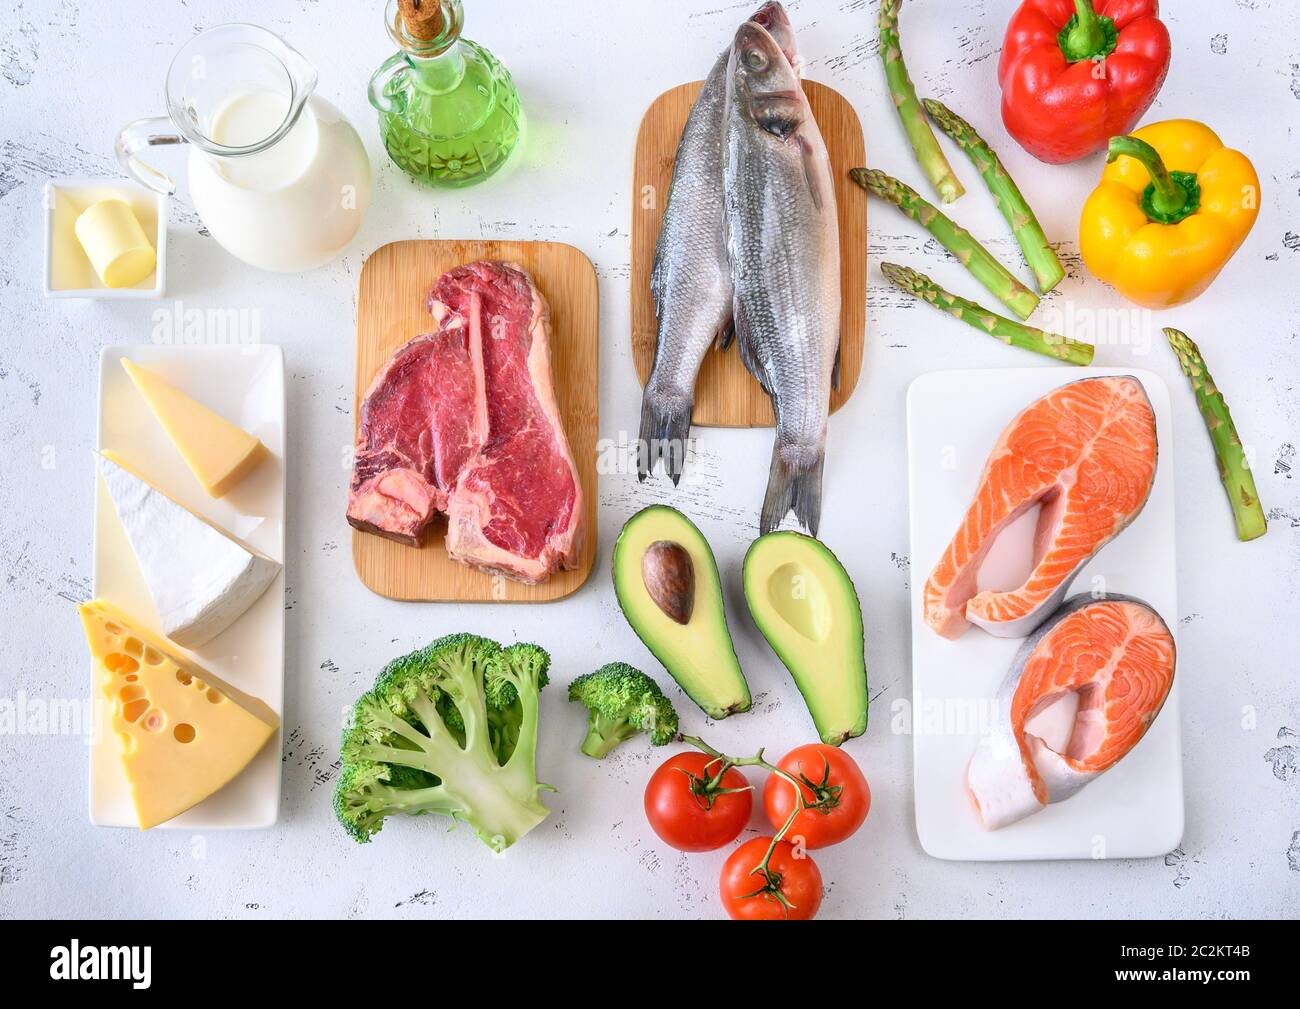 Assortment of food for ketogenic diet on wooden background Stock Photo